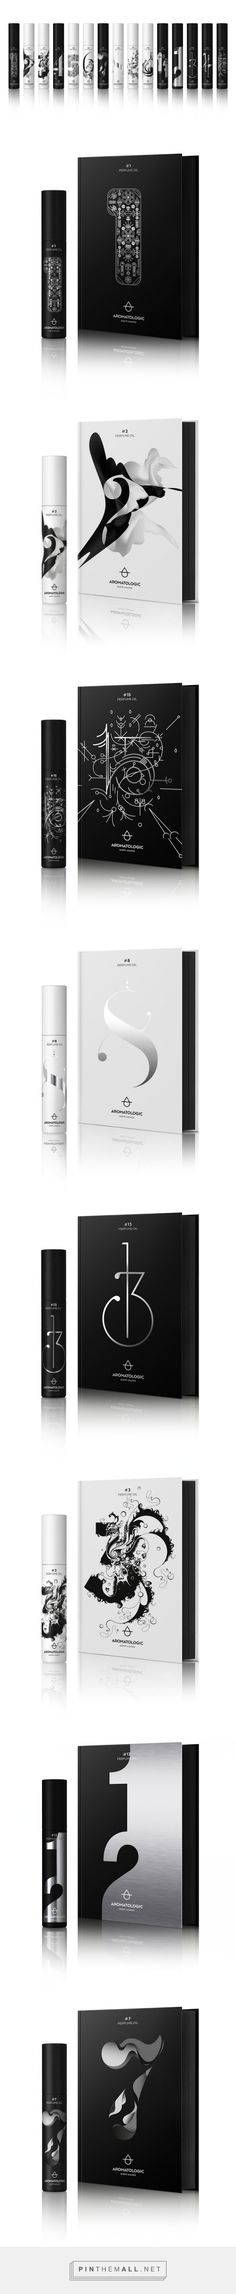 packaging / package design | Aromatologic Oil Perfumes